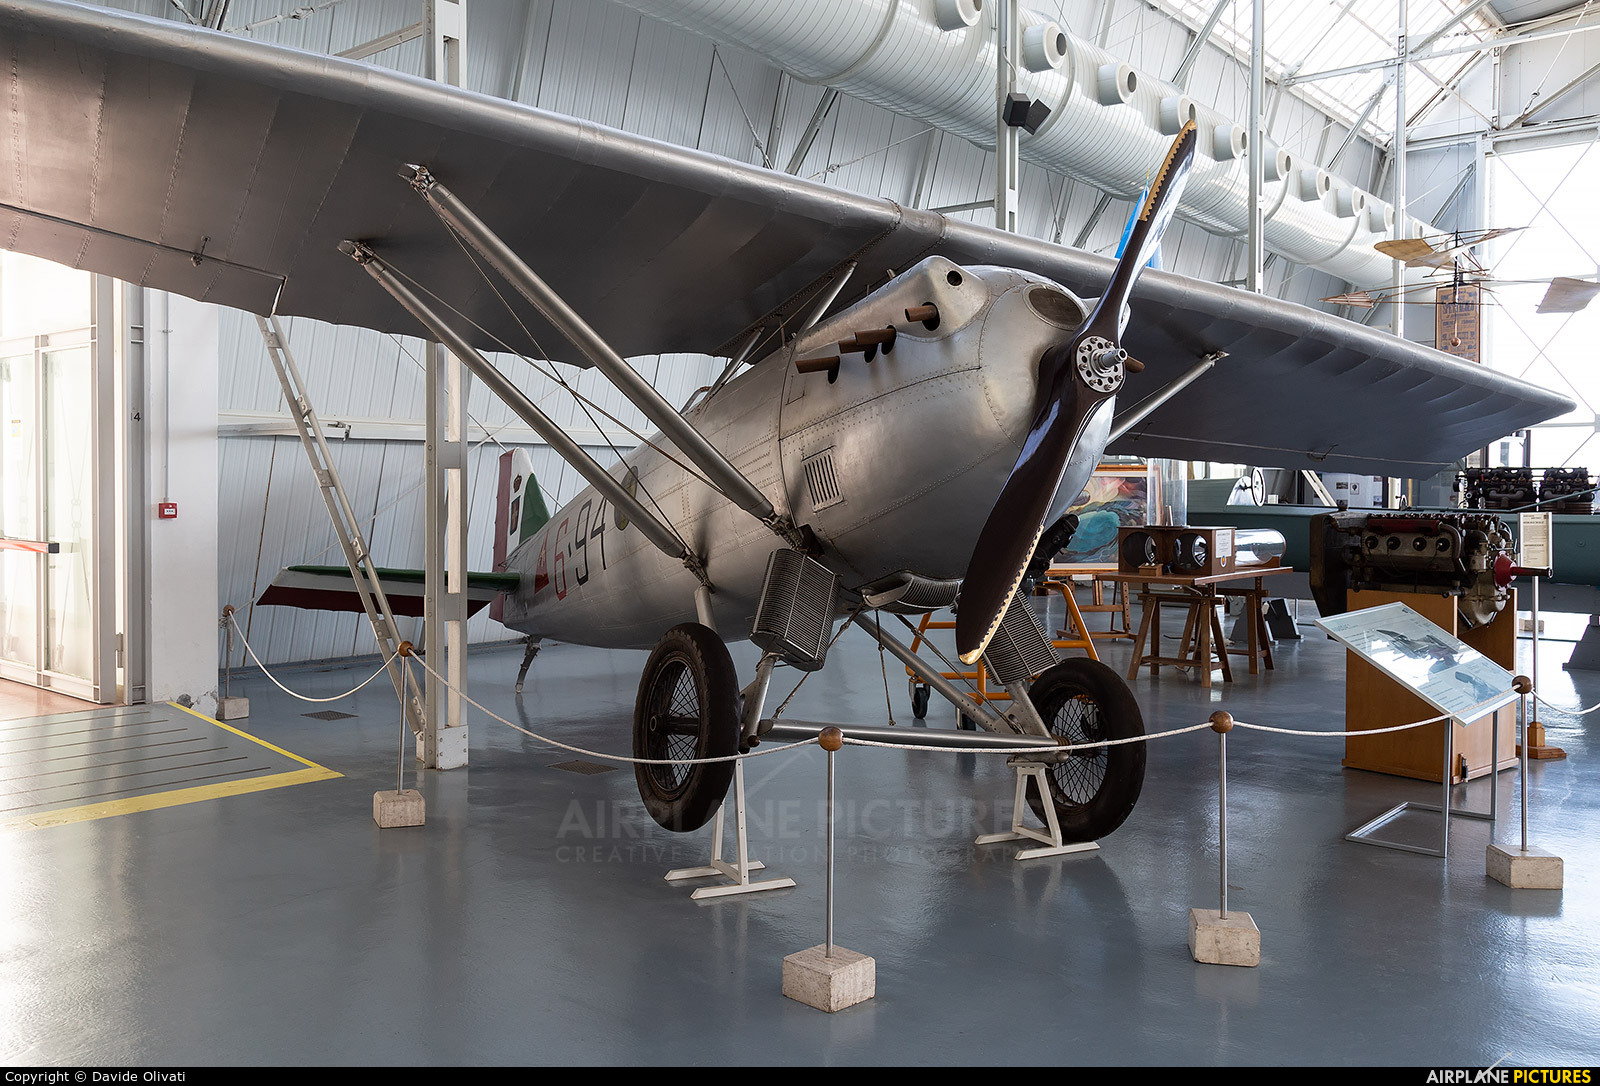 Italy - Air Force MM1208 aircraft at Vigna di Valle - Italian AF Museum